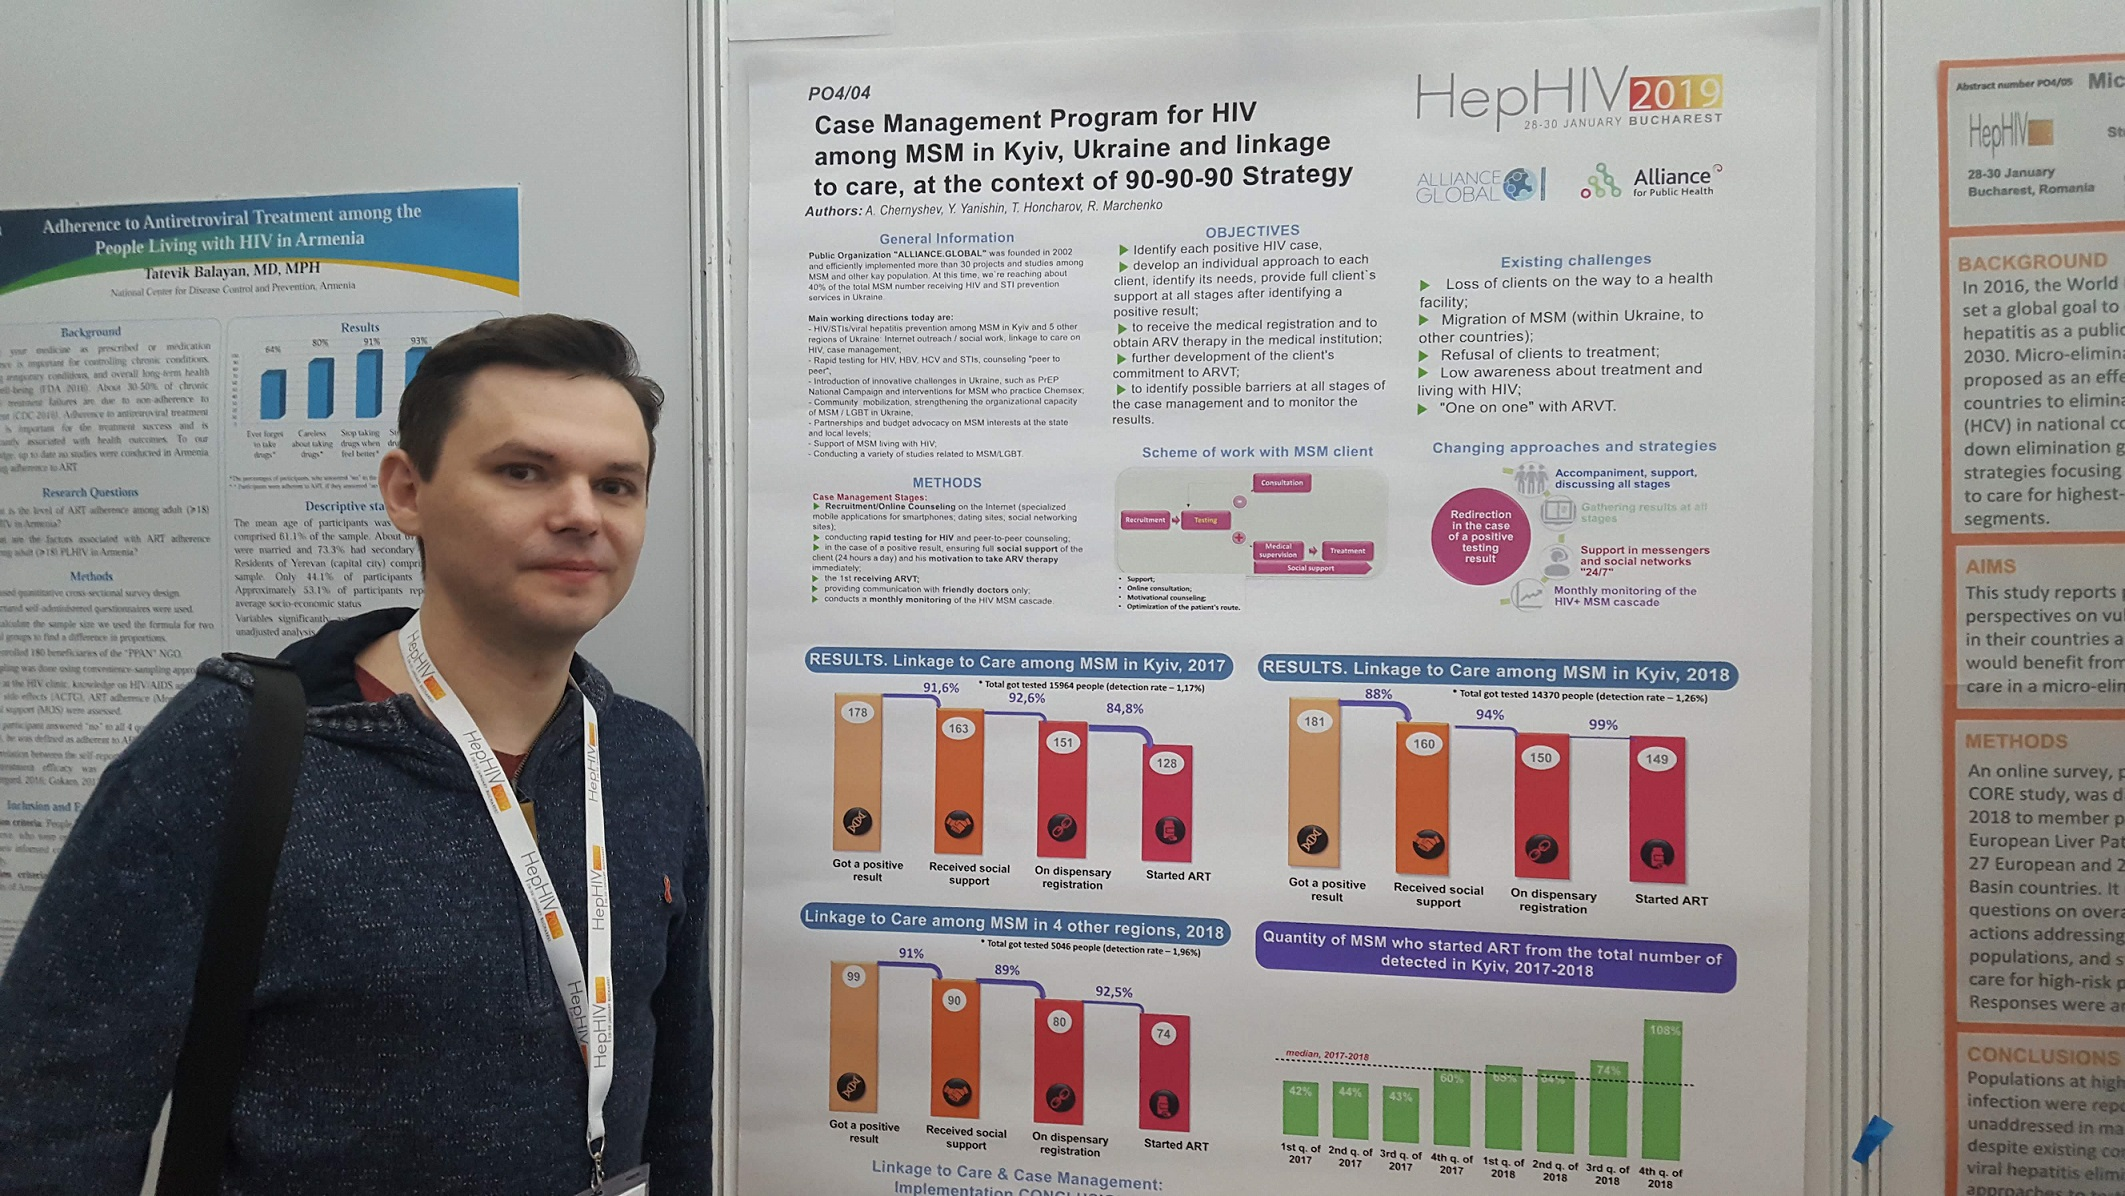 Andrii Chernyshev presenting Alliance Global poster on Case Management Program for HIV among MSM at HepHIV 2019